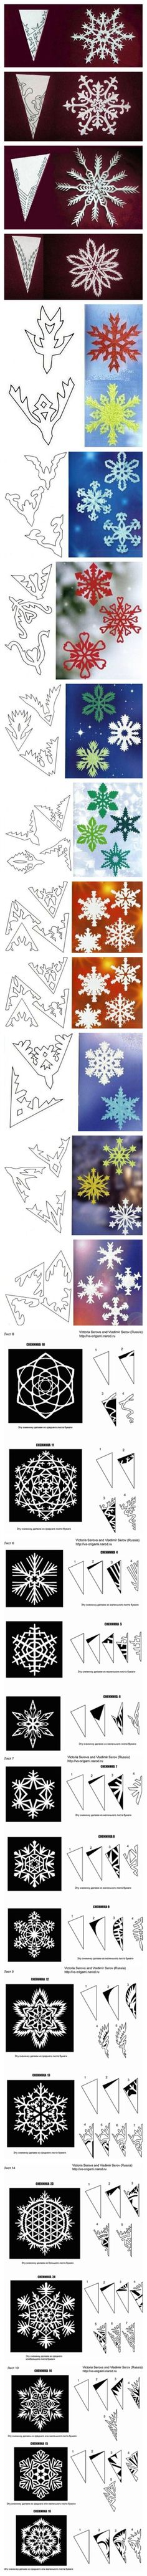 Snowflake templates to trace and cut